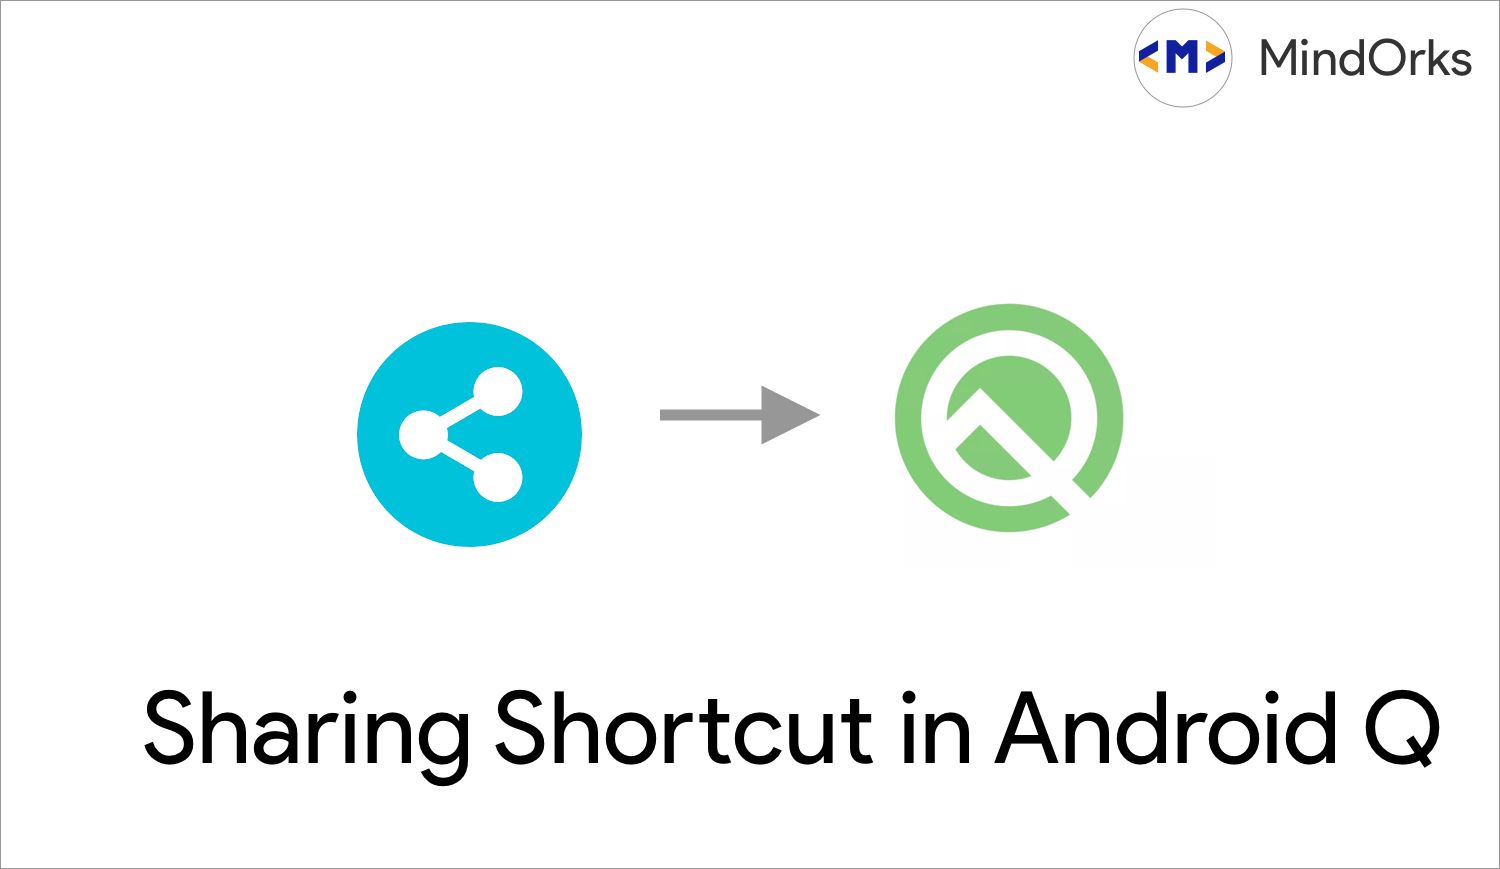 Getting Started with ShareSheet in Android Q